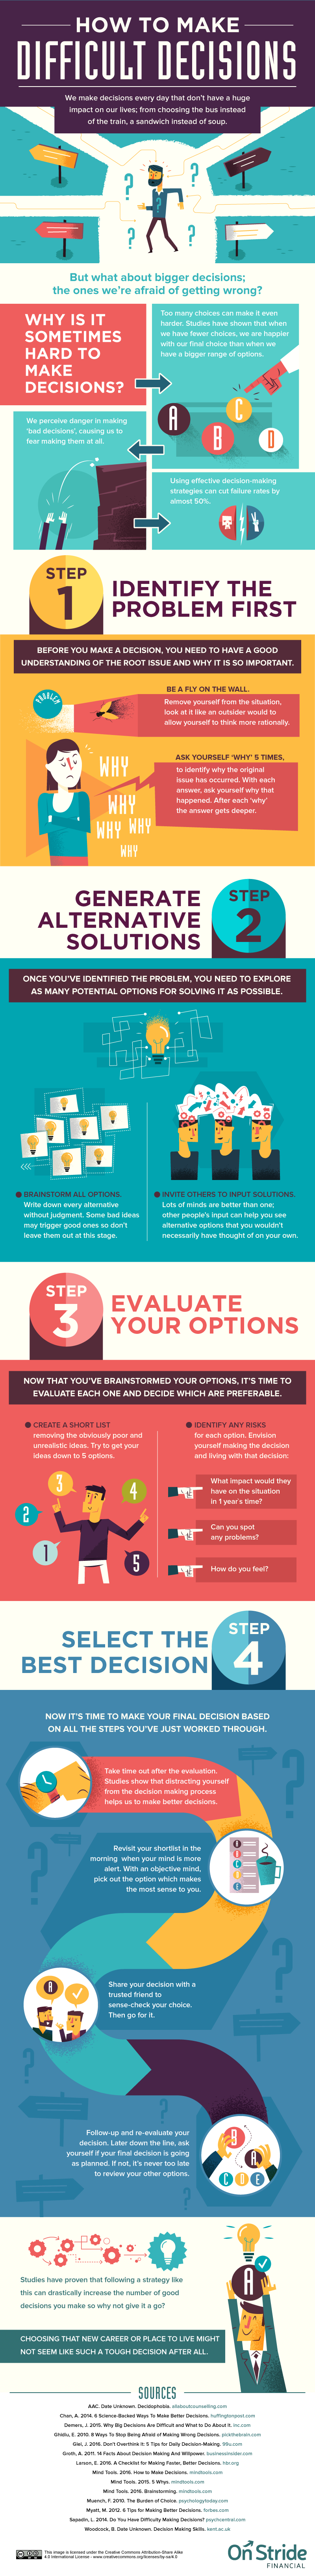 How to make difficult decisions infographic via OnStride